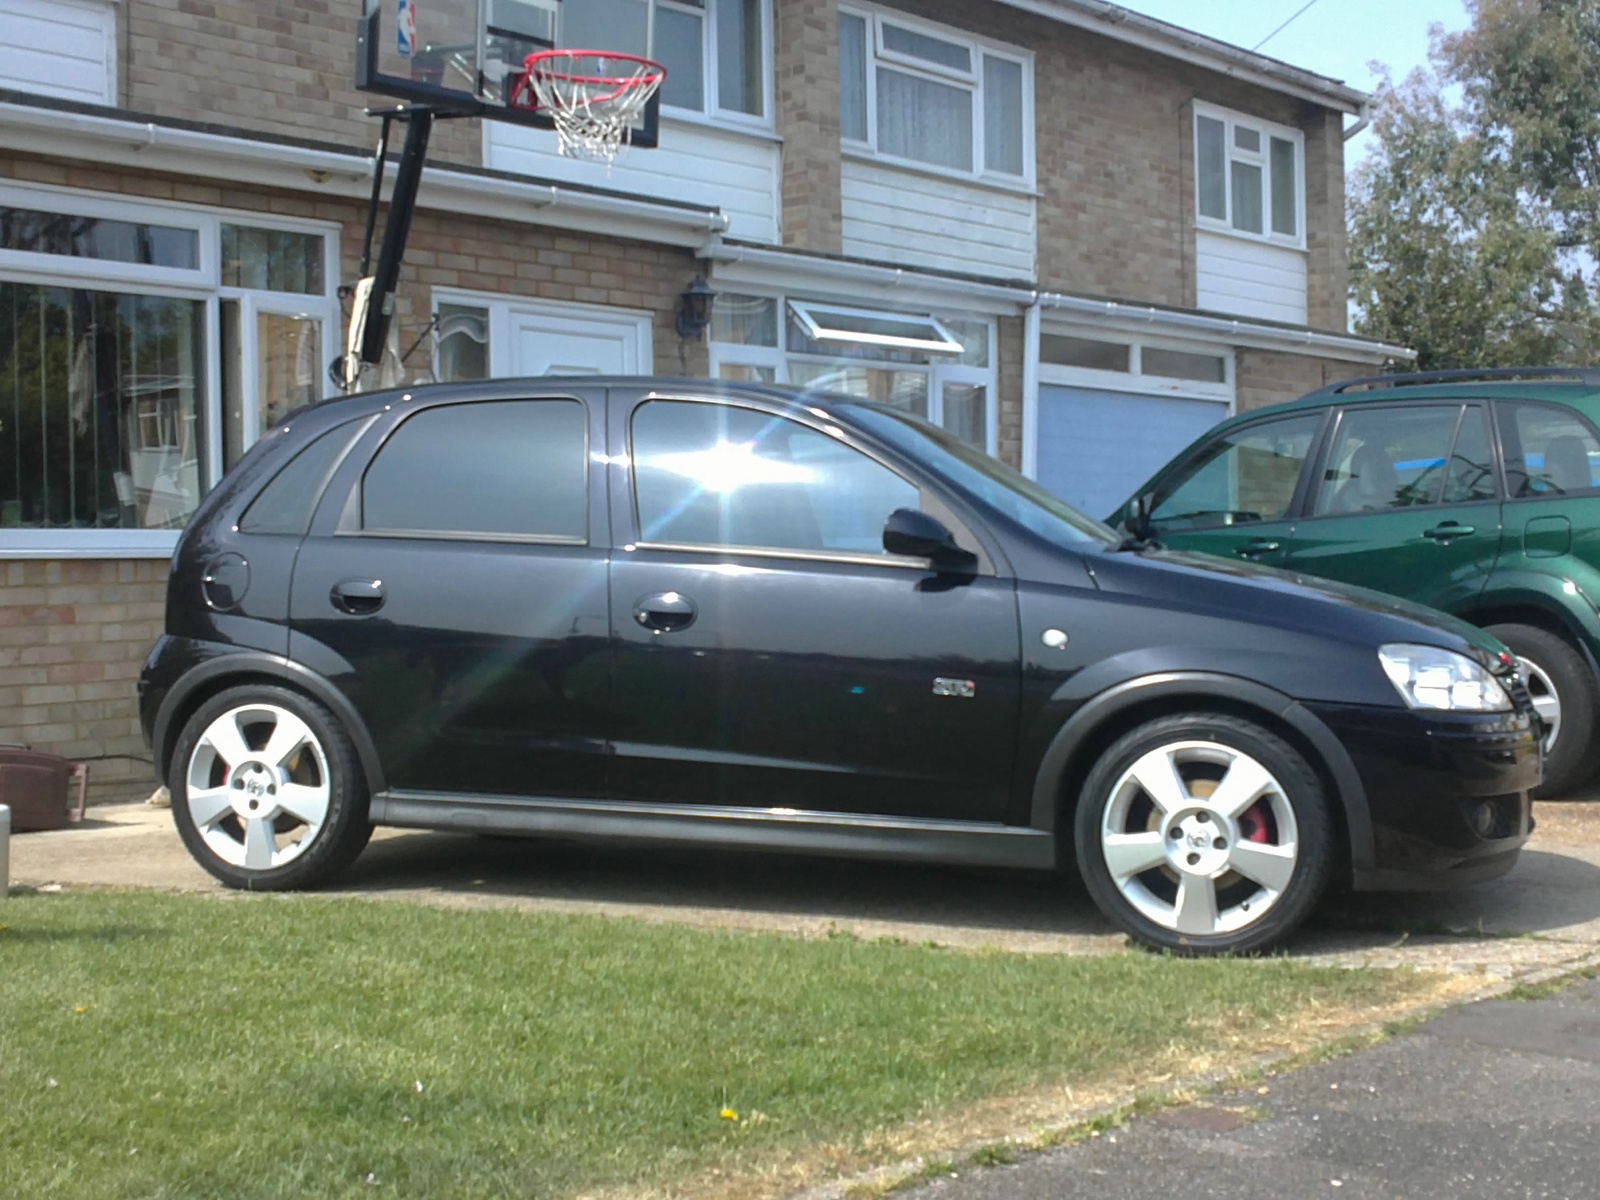 2004 vauxhall corsa exterior pictures cargurus. Black Bedroom Furniture Sets. Home Design Ideas